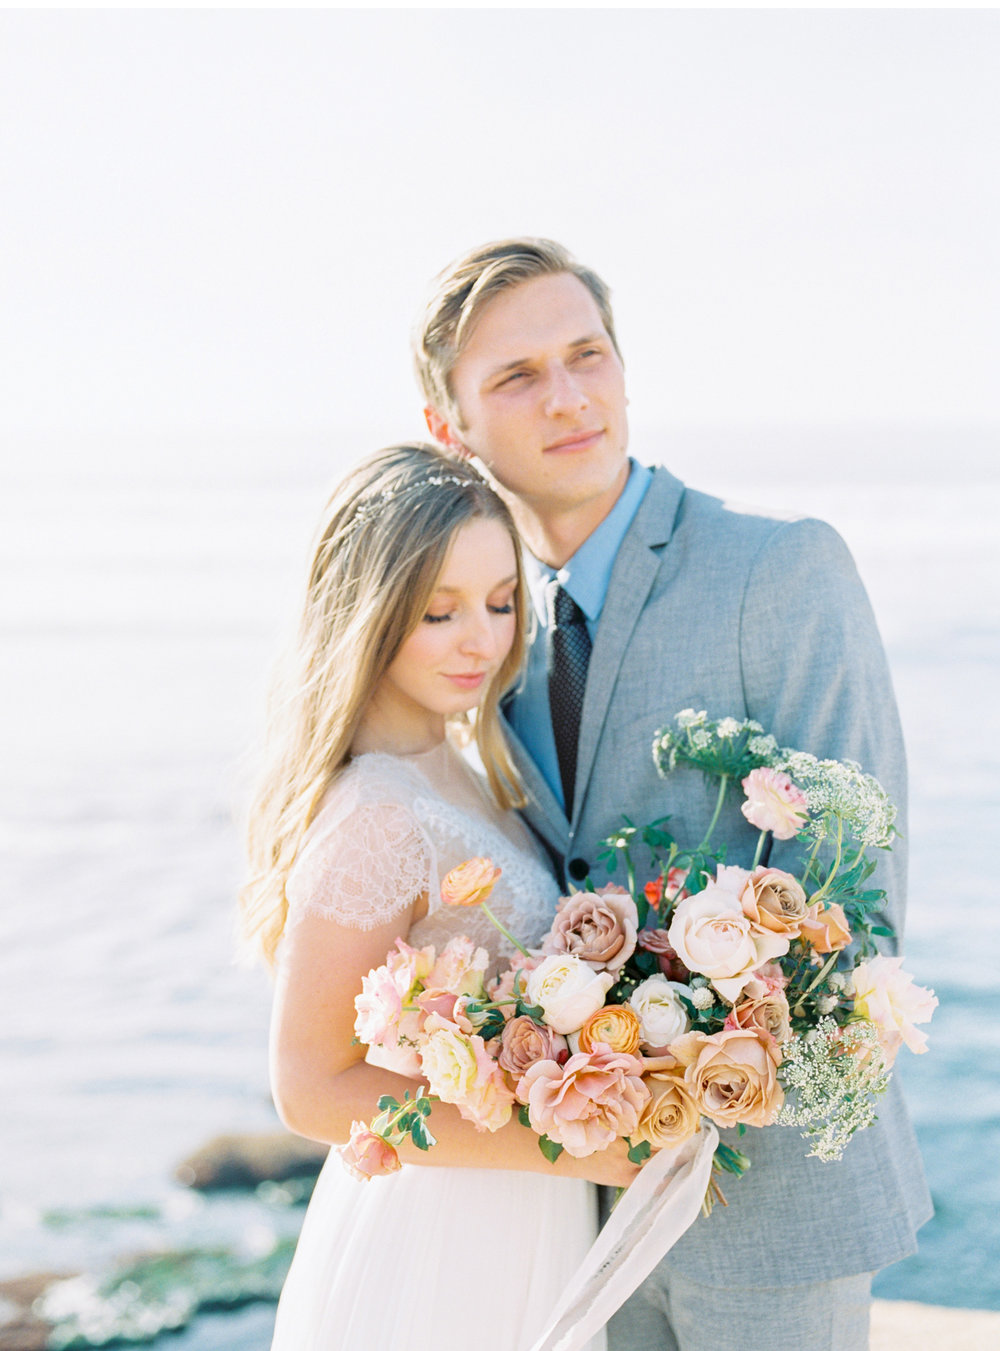 Style-Me-Pretty-California-Beach-Wedding-Natalie-Schutt-Photography_13.jpg